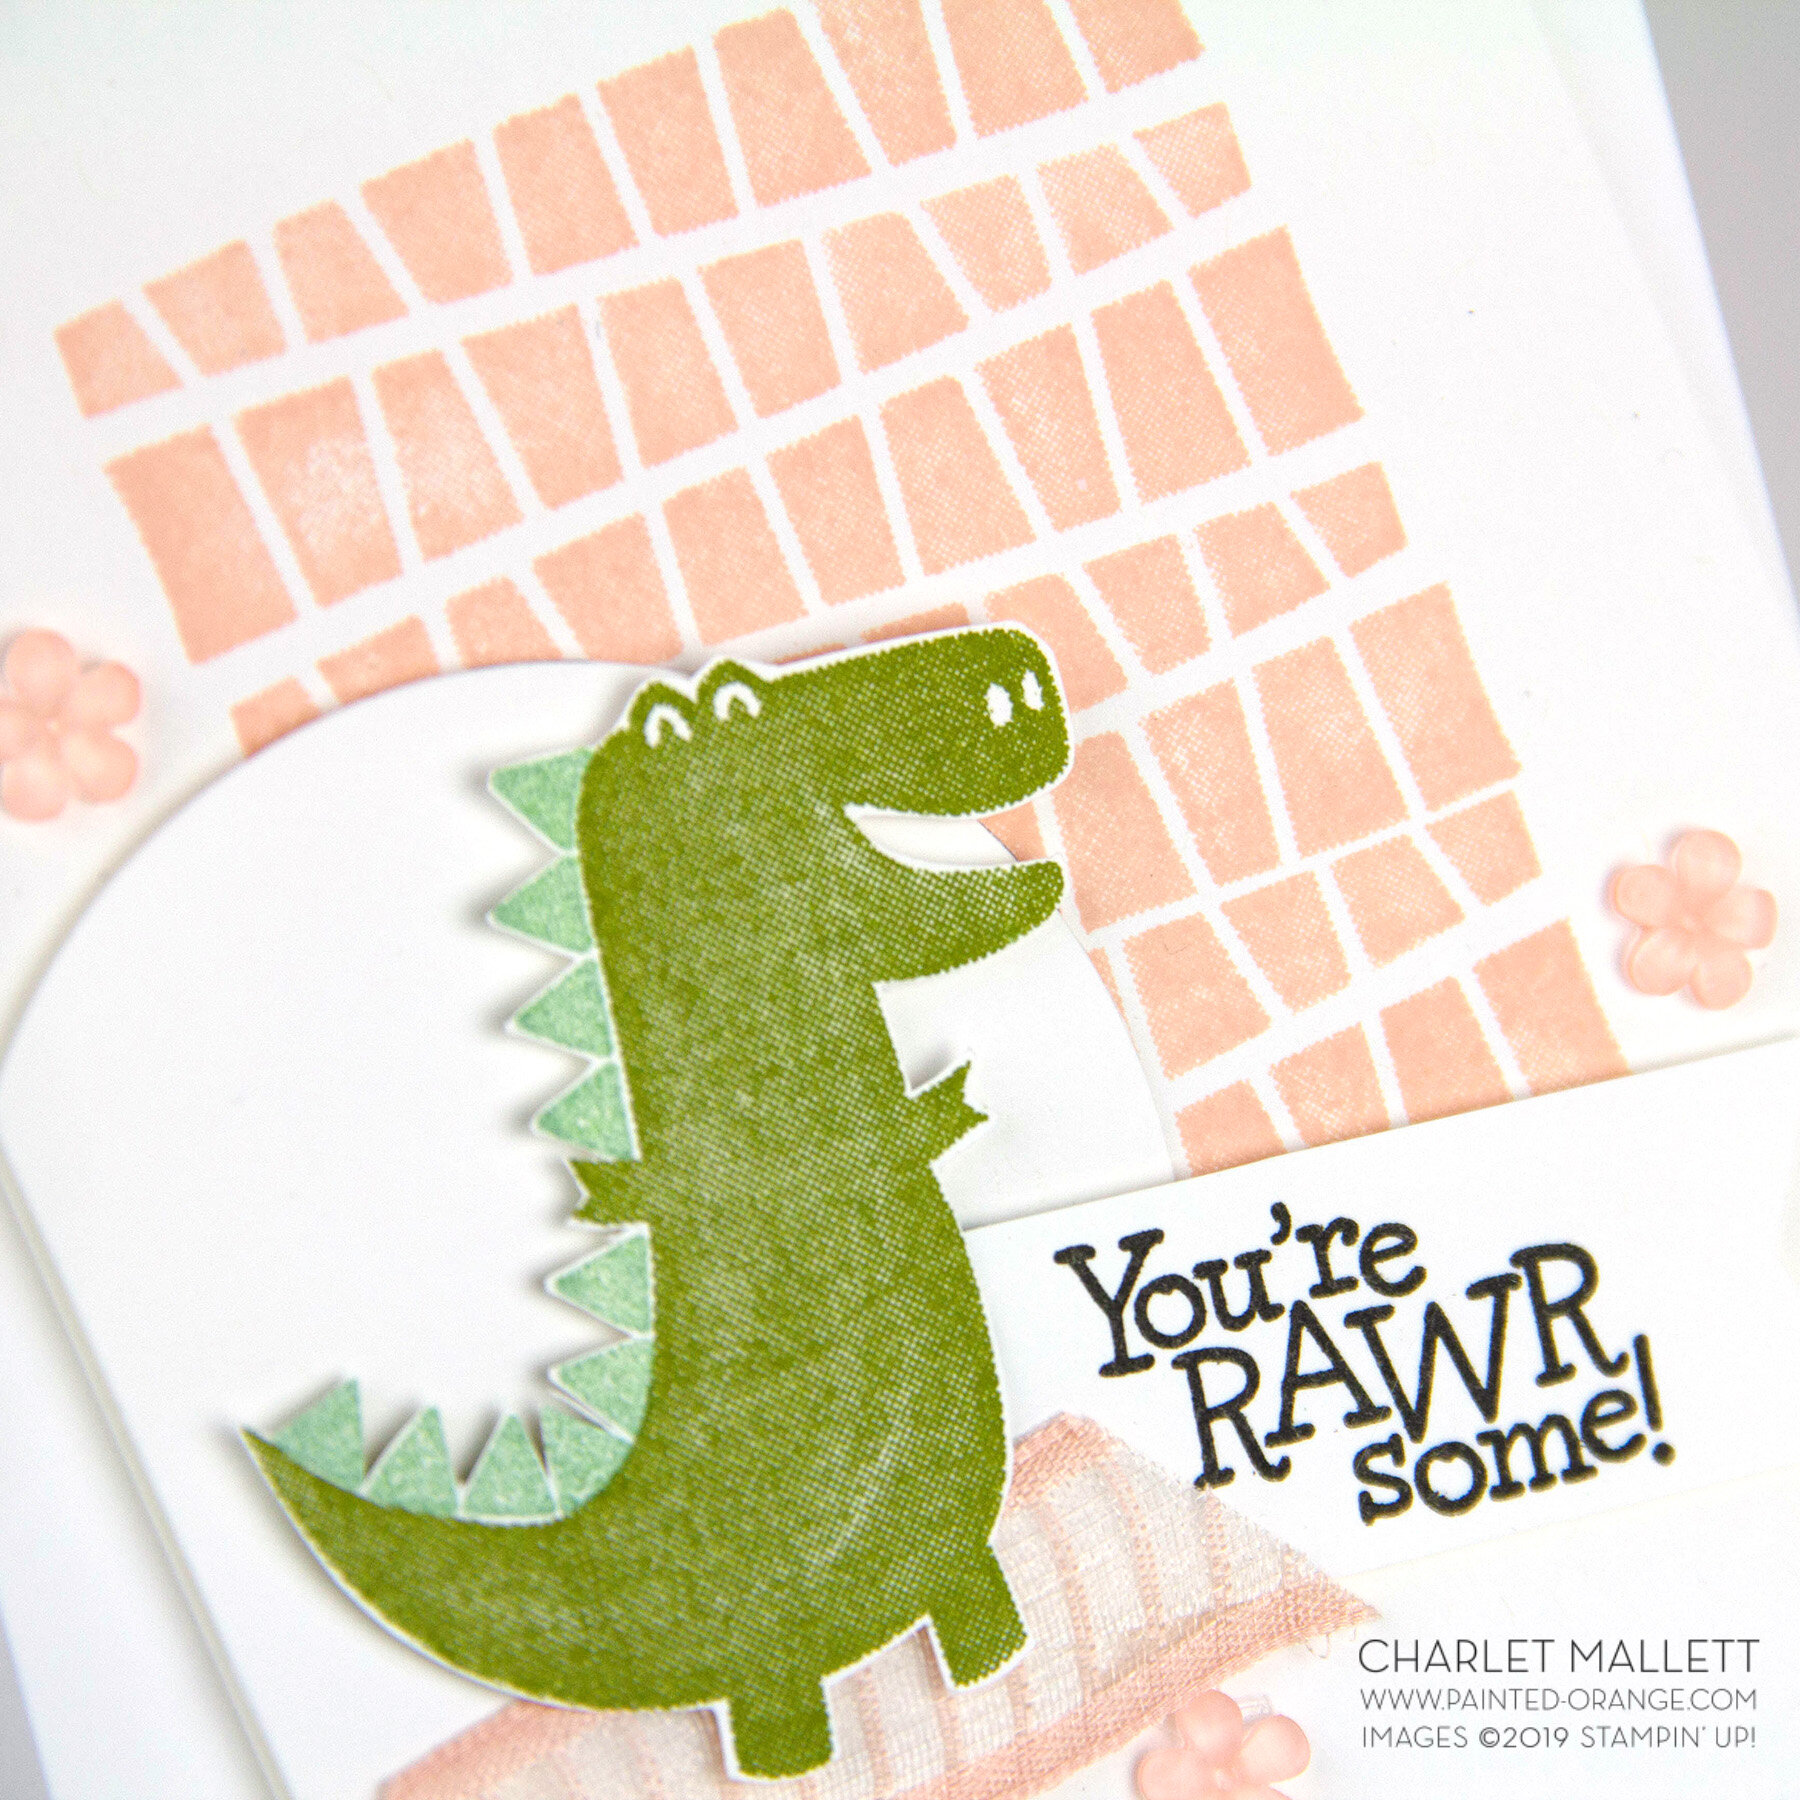 Dino Days Rawrsome Card - Charlet Mallett, Stampin' Up!